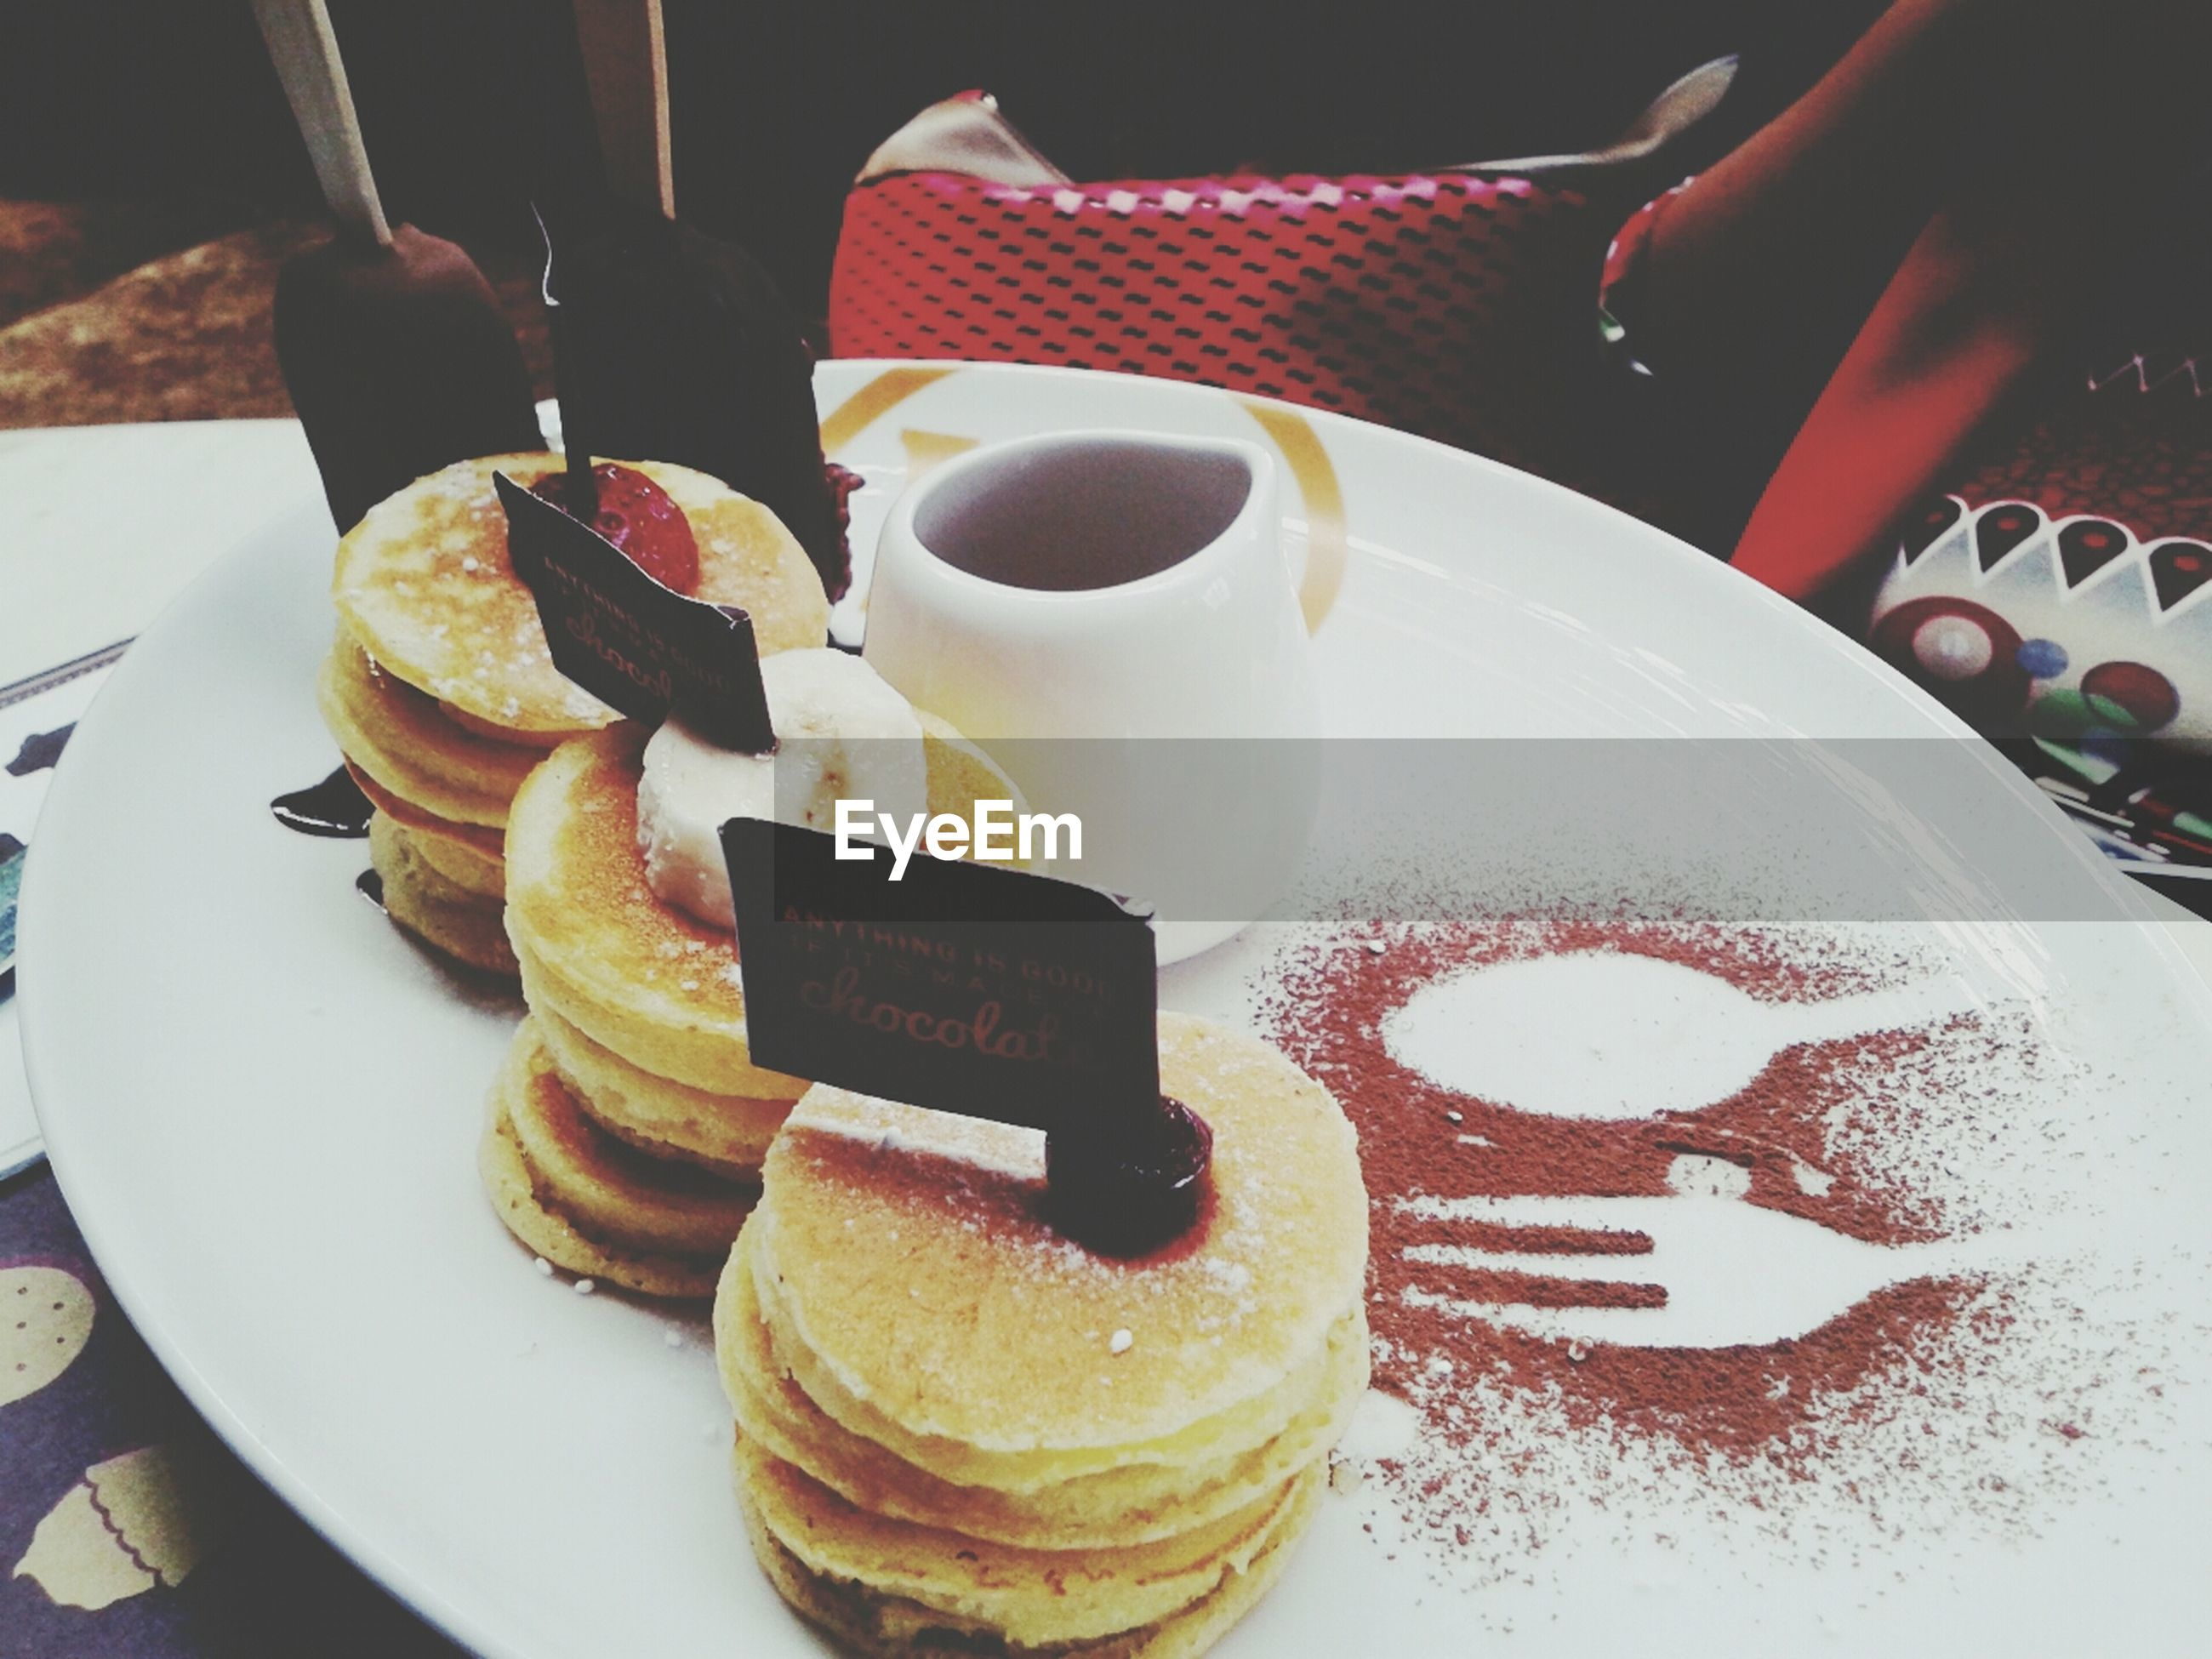 food and drink, sweet food, food, indoors, freshness, dessert, ready-to-eat, indulgence, unhealthy eating, plate, still life, table, cake, chocolate, temptation, serving size, high angle view, close-up, pastry, fork